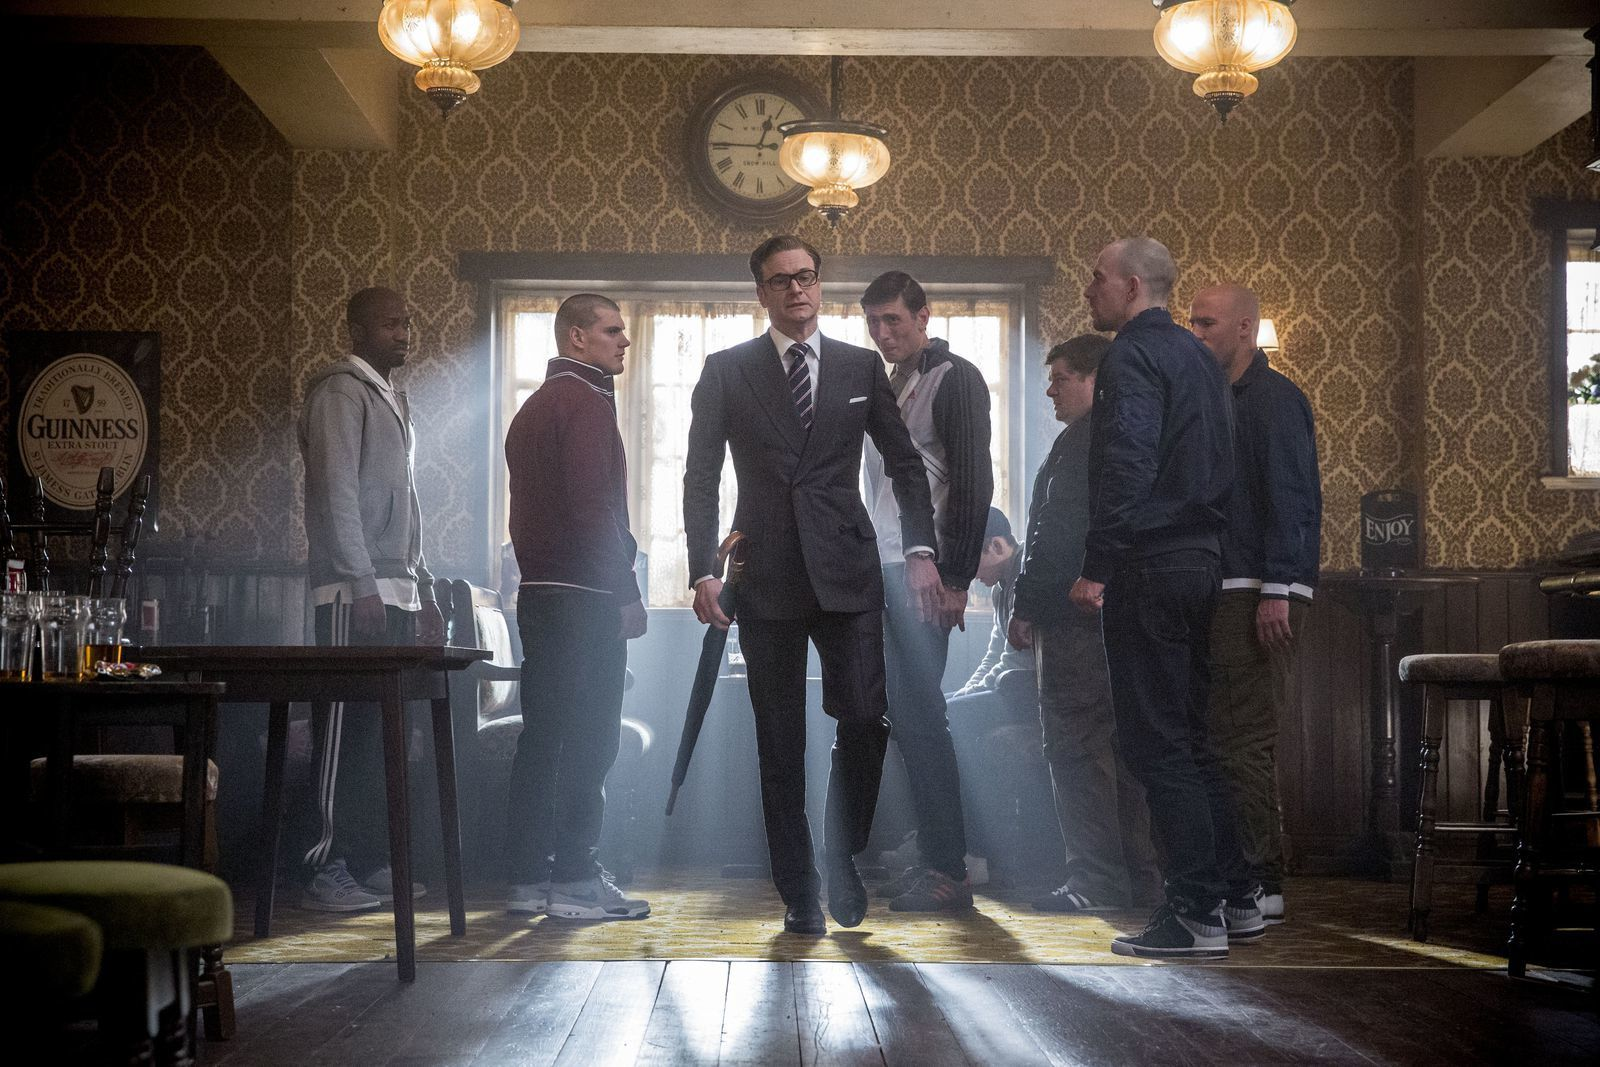 [critique] 23 raisons d'aller voir Kingsman : Services secrets